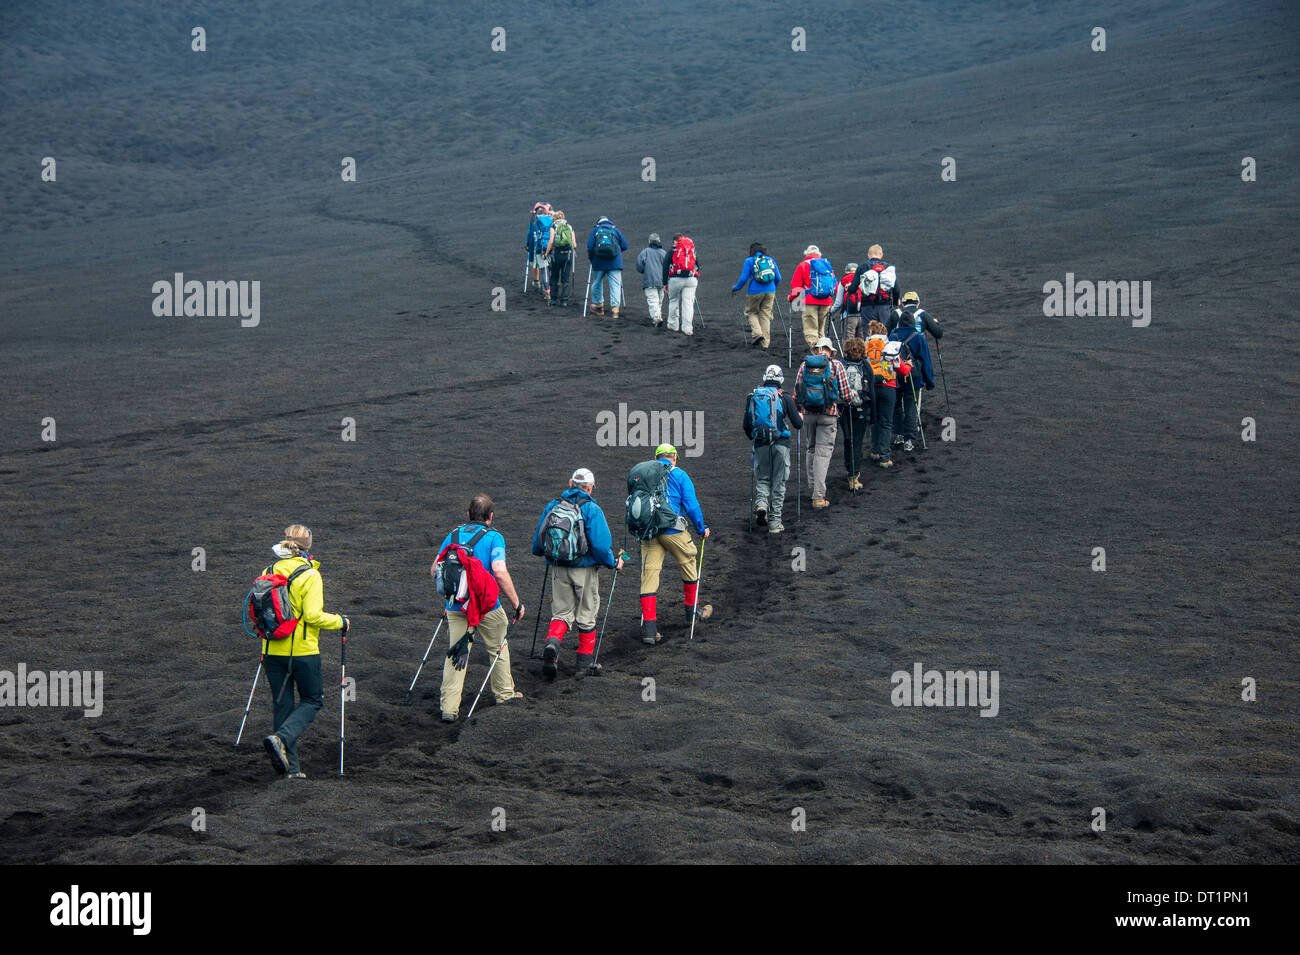 Tourists walking in a line through the lava sands of the Tolbachik volcano, Kamchatka, Russia, Eurasia - Stock Image